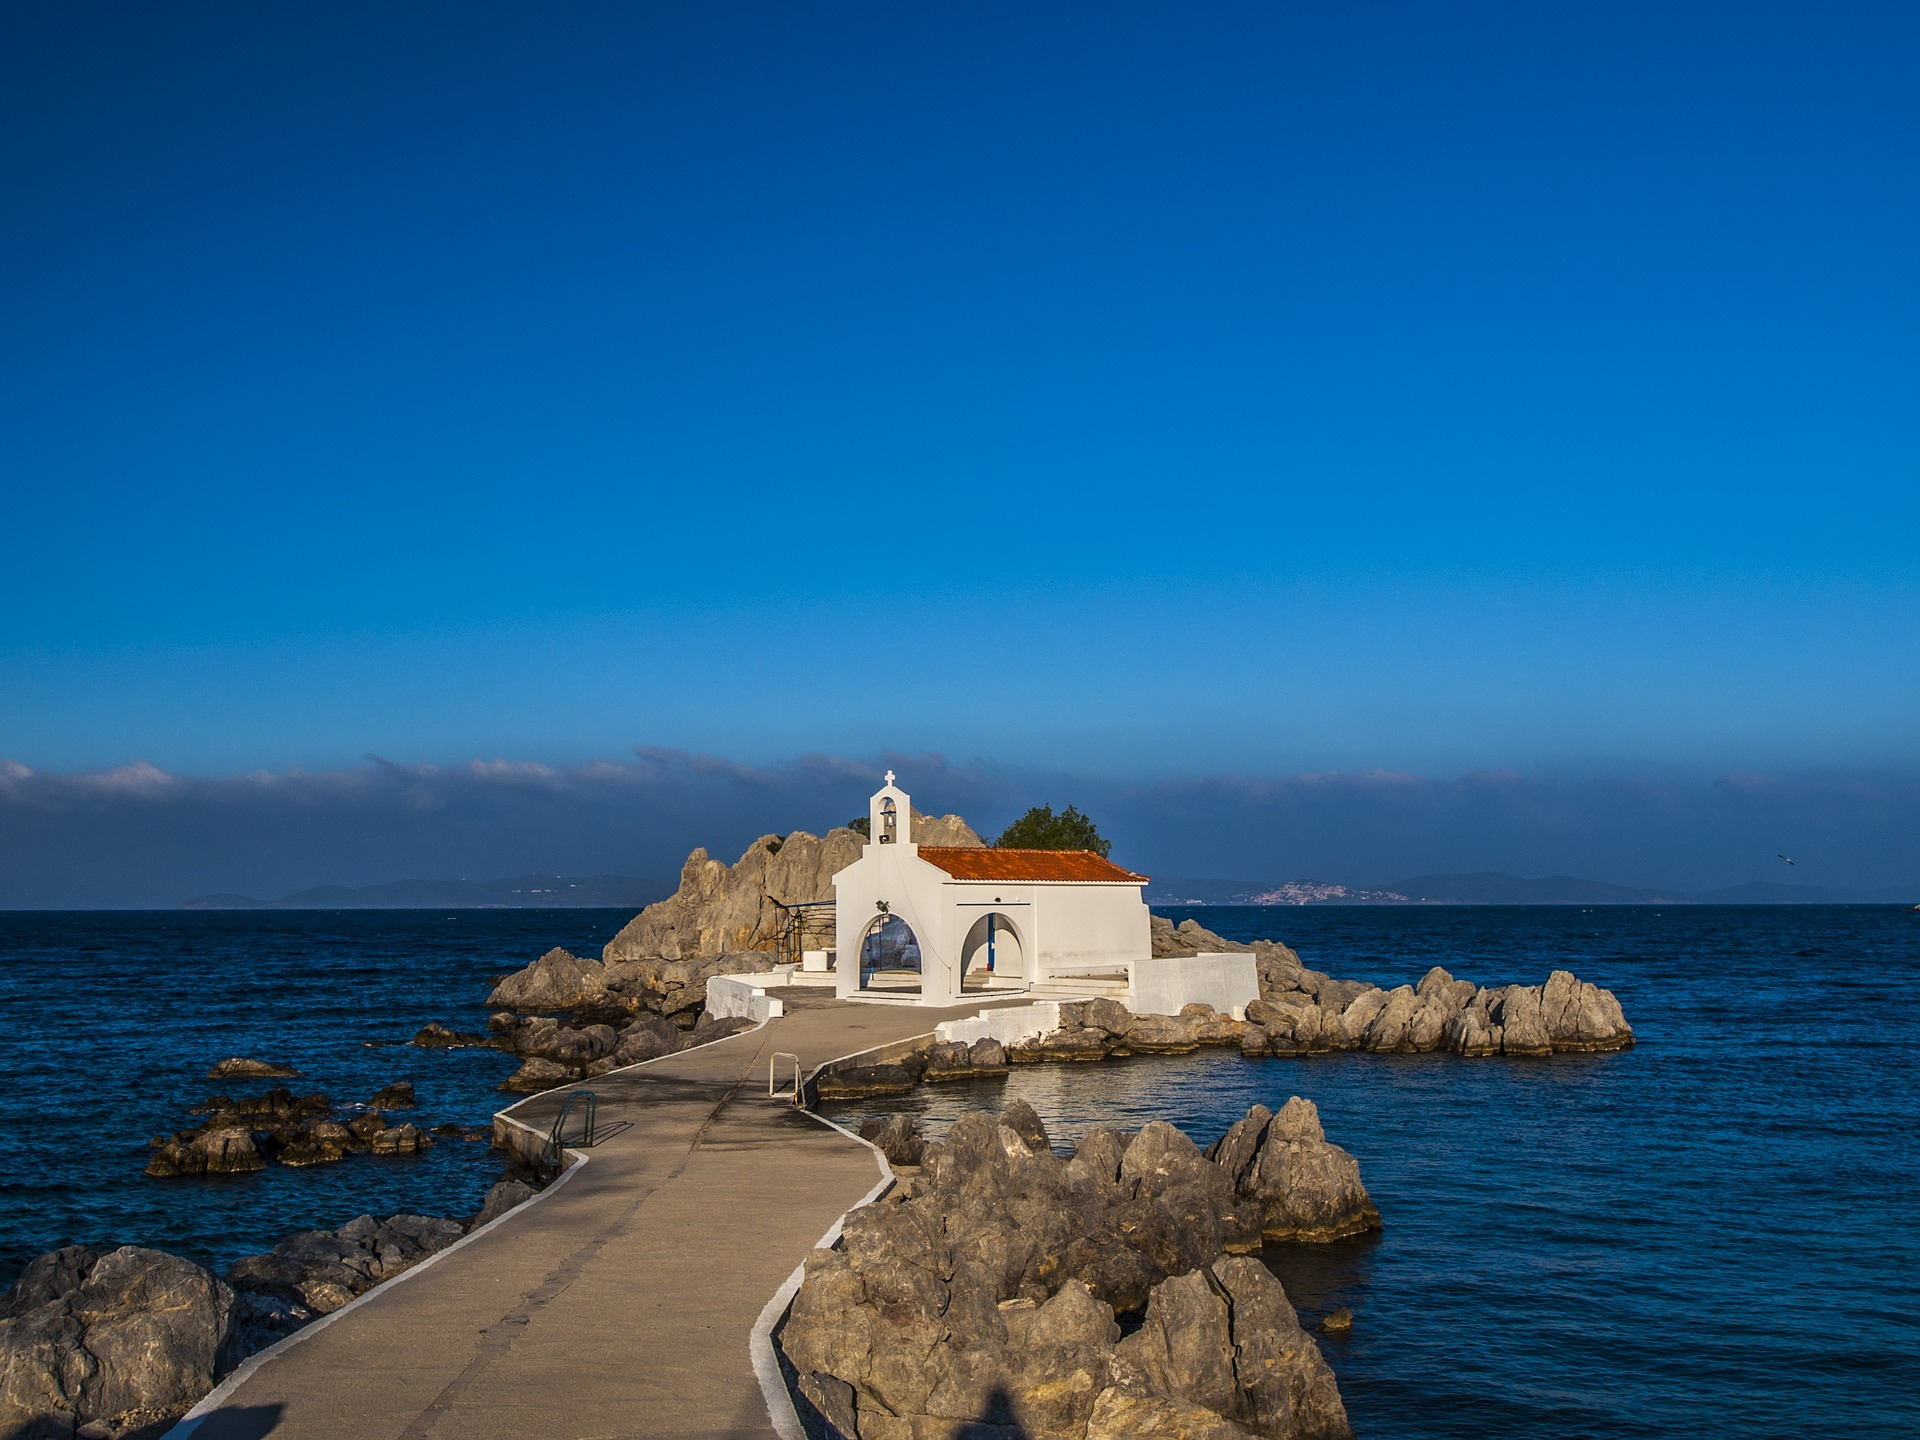 Church by the water on the Greek island of Chios